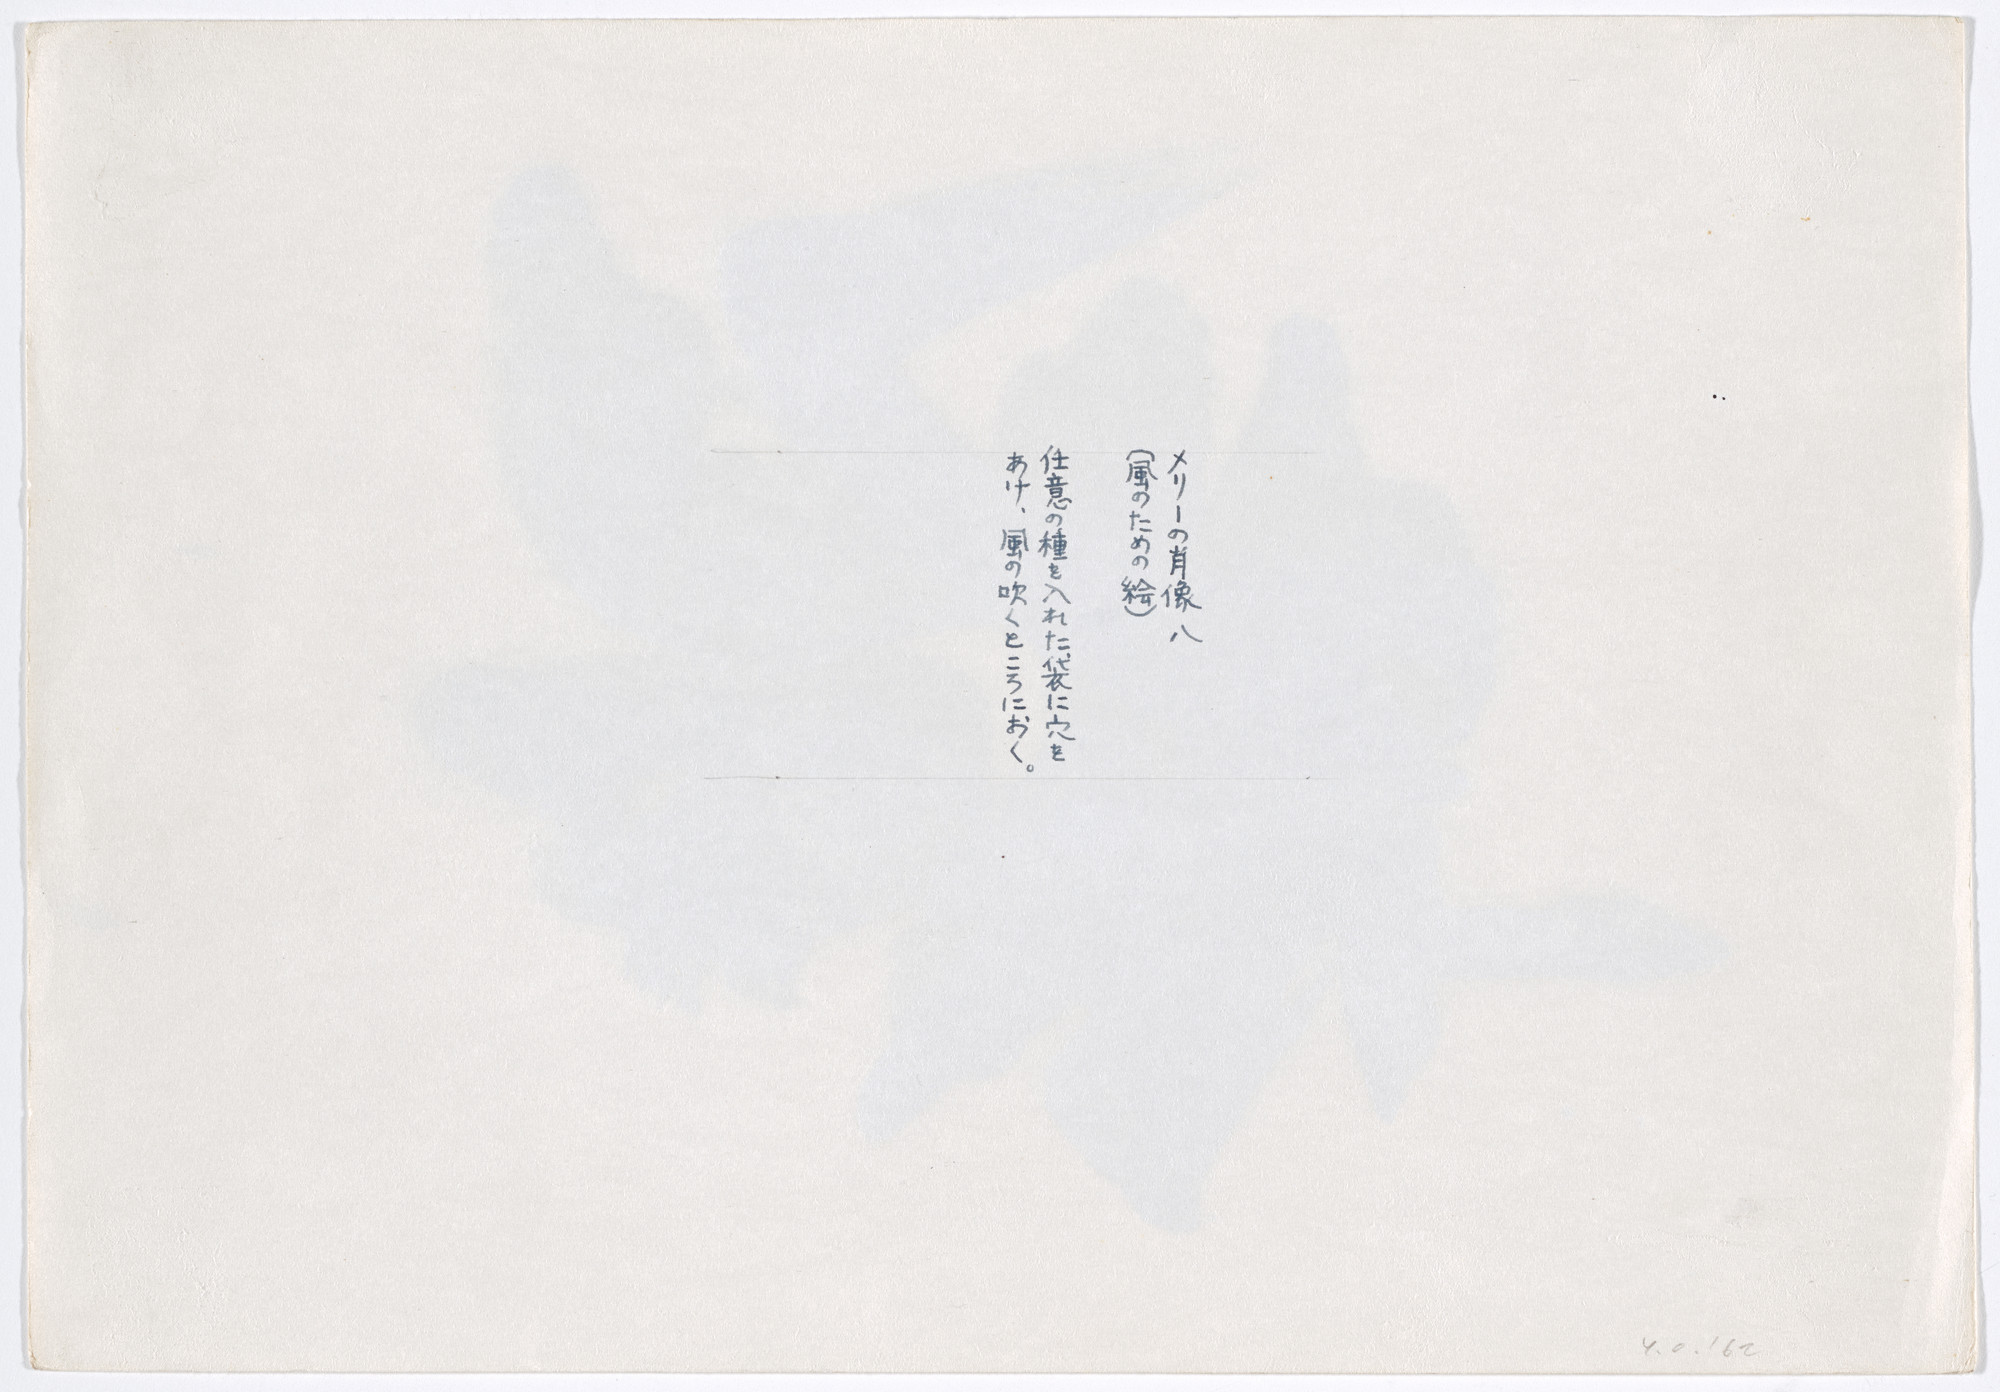 Yoko Ono. Painting for the Wind. 1961